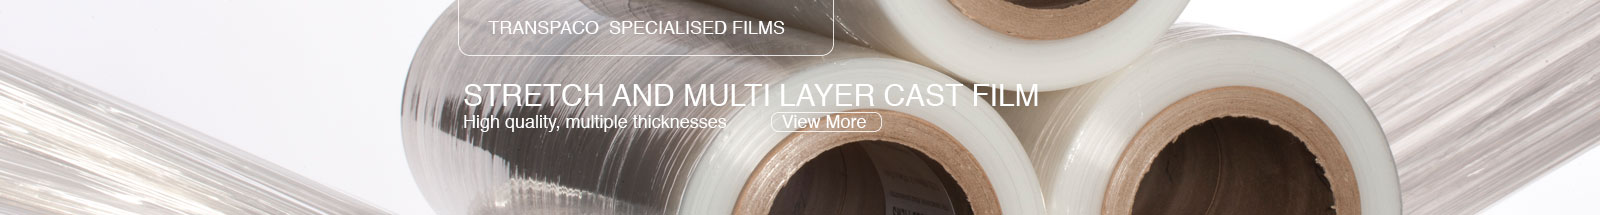 TRANSPACO SPECIALISED FILMS - Stretch and multi layer cast film